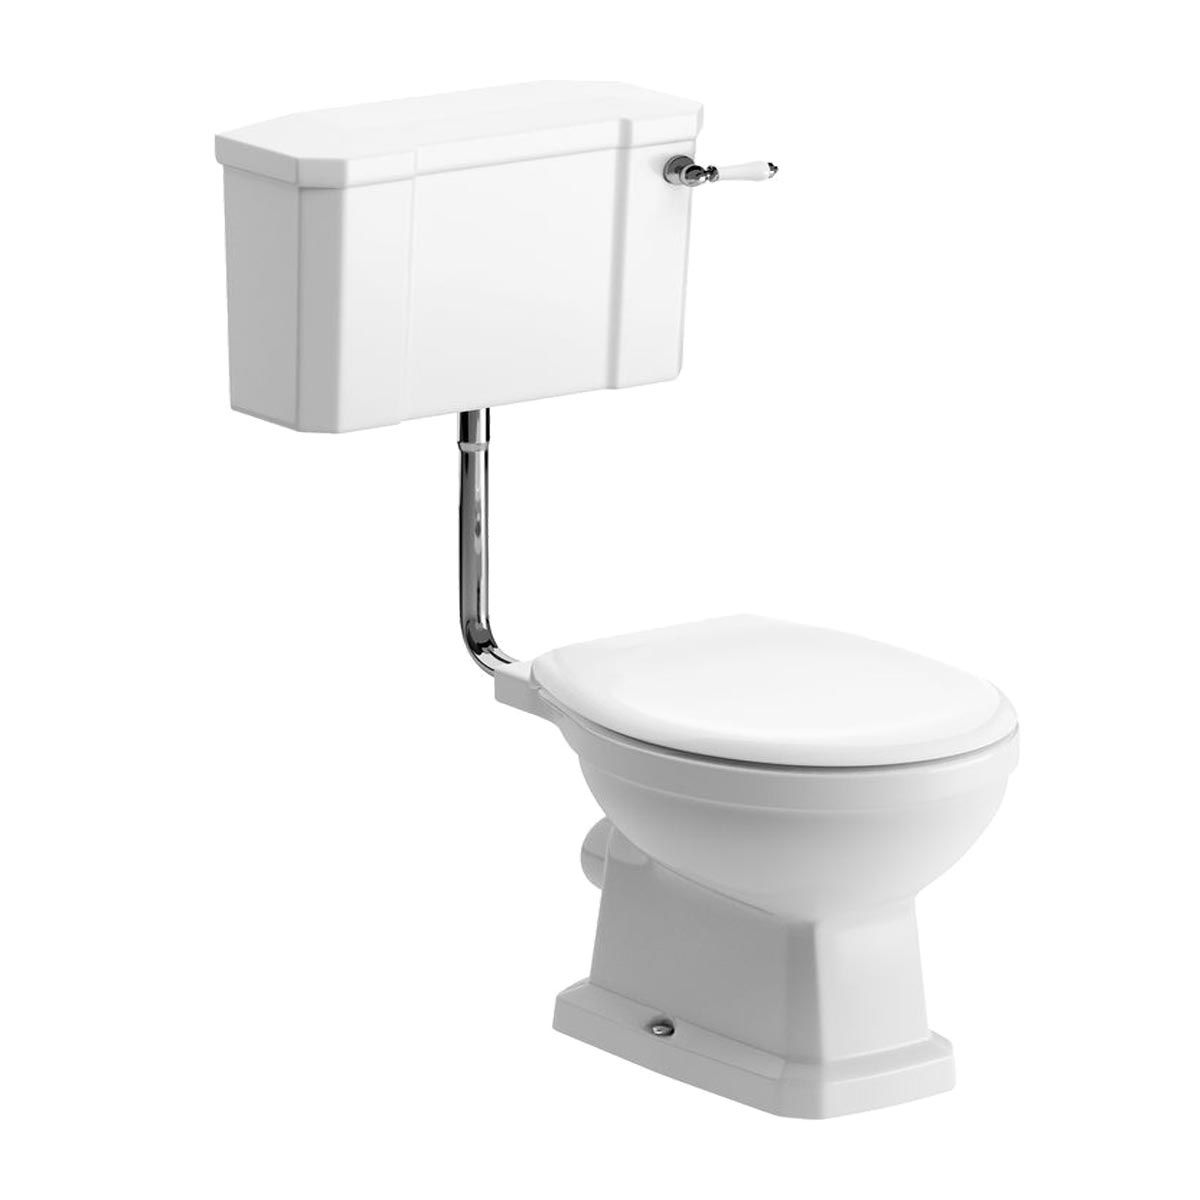 BTL Sherbourne Low Level Toilet with Sea Green Wood Effect Seat